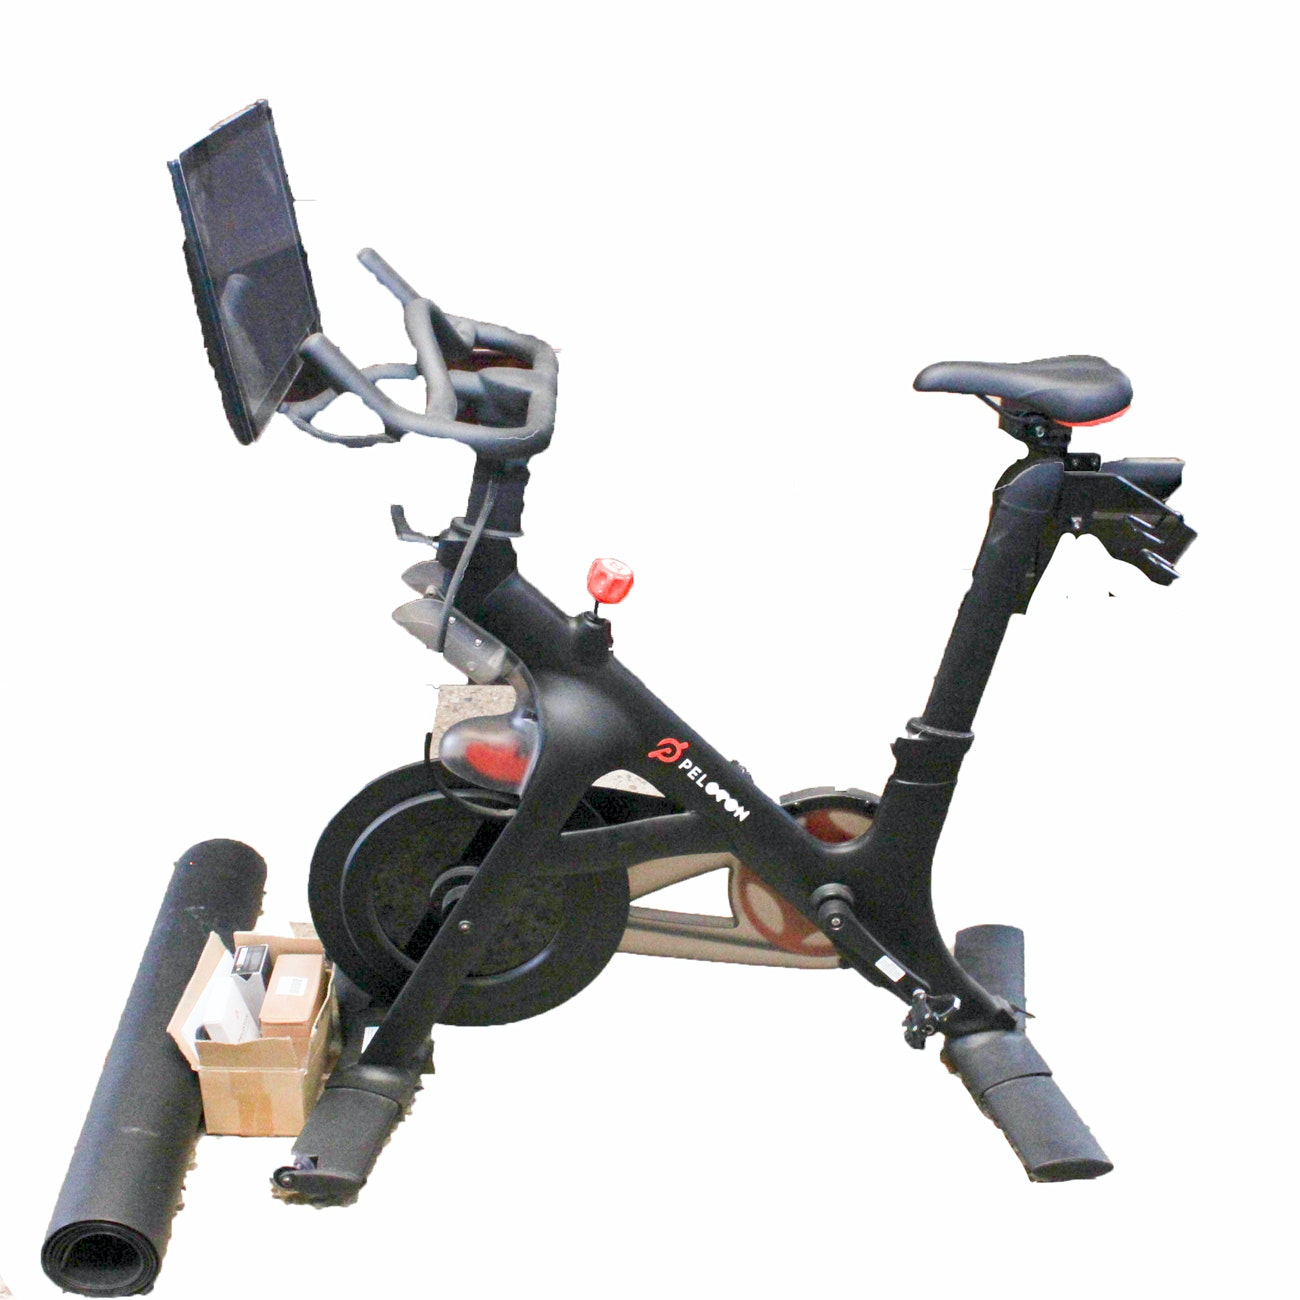 Peloton Exercise Bike with Accessories